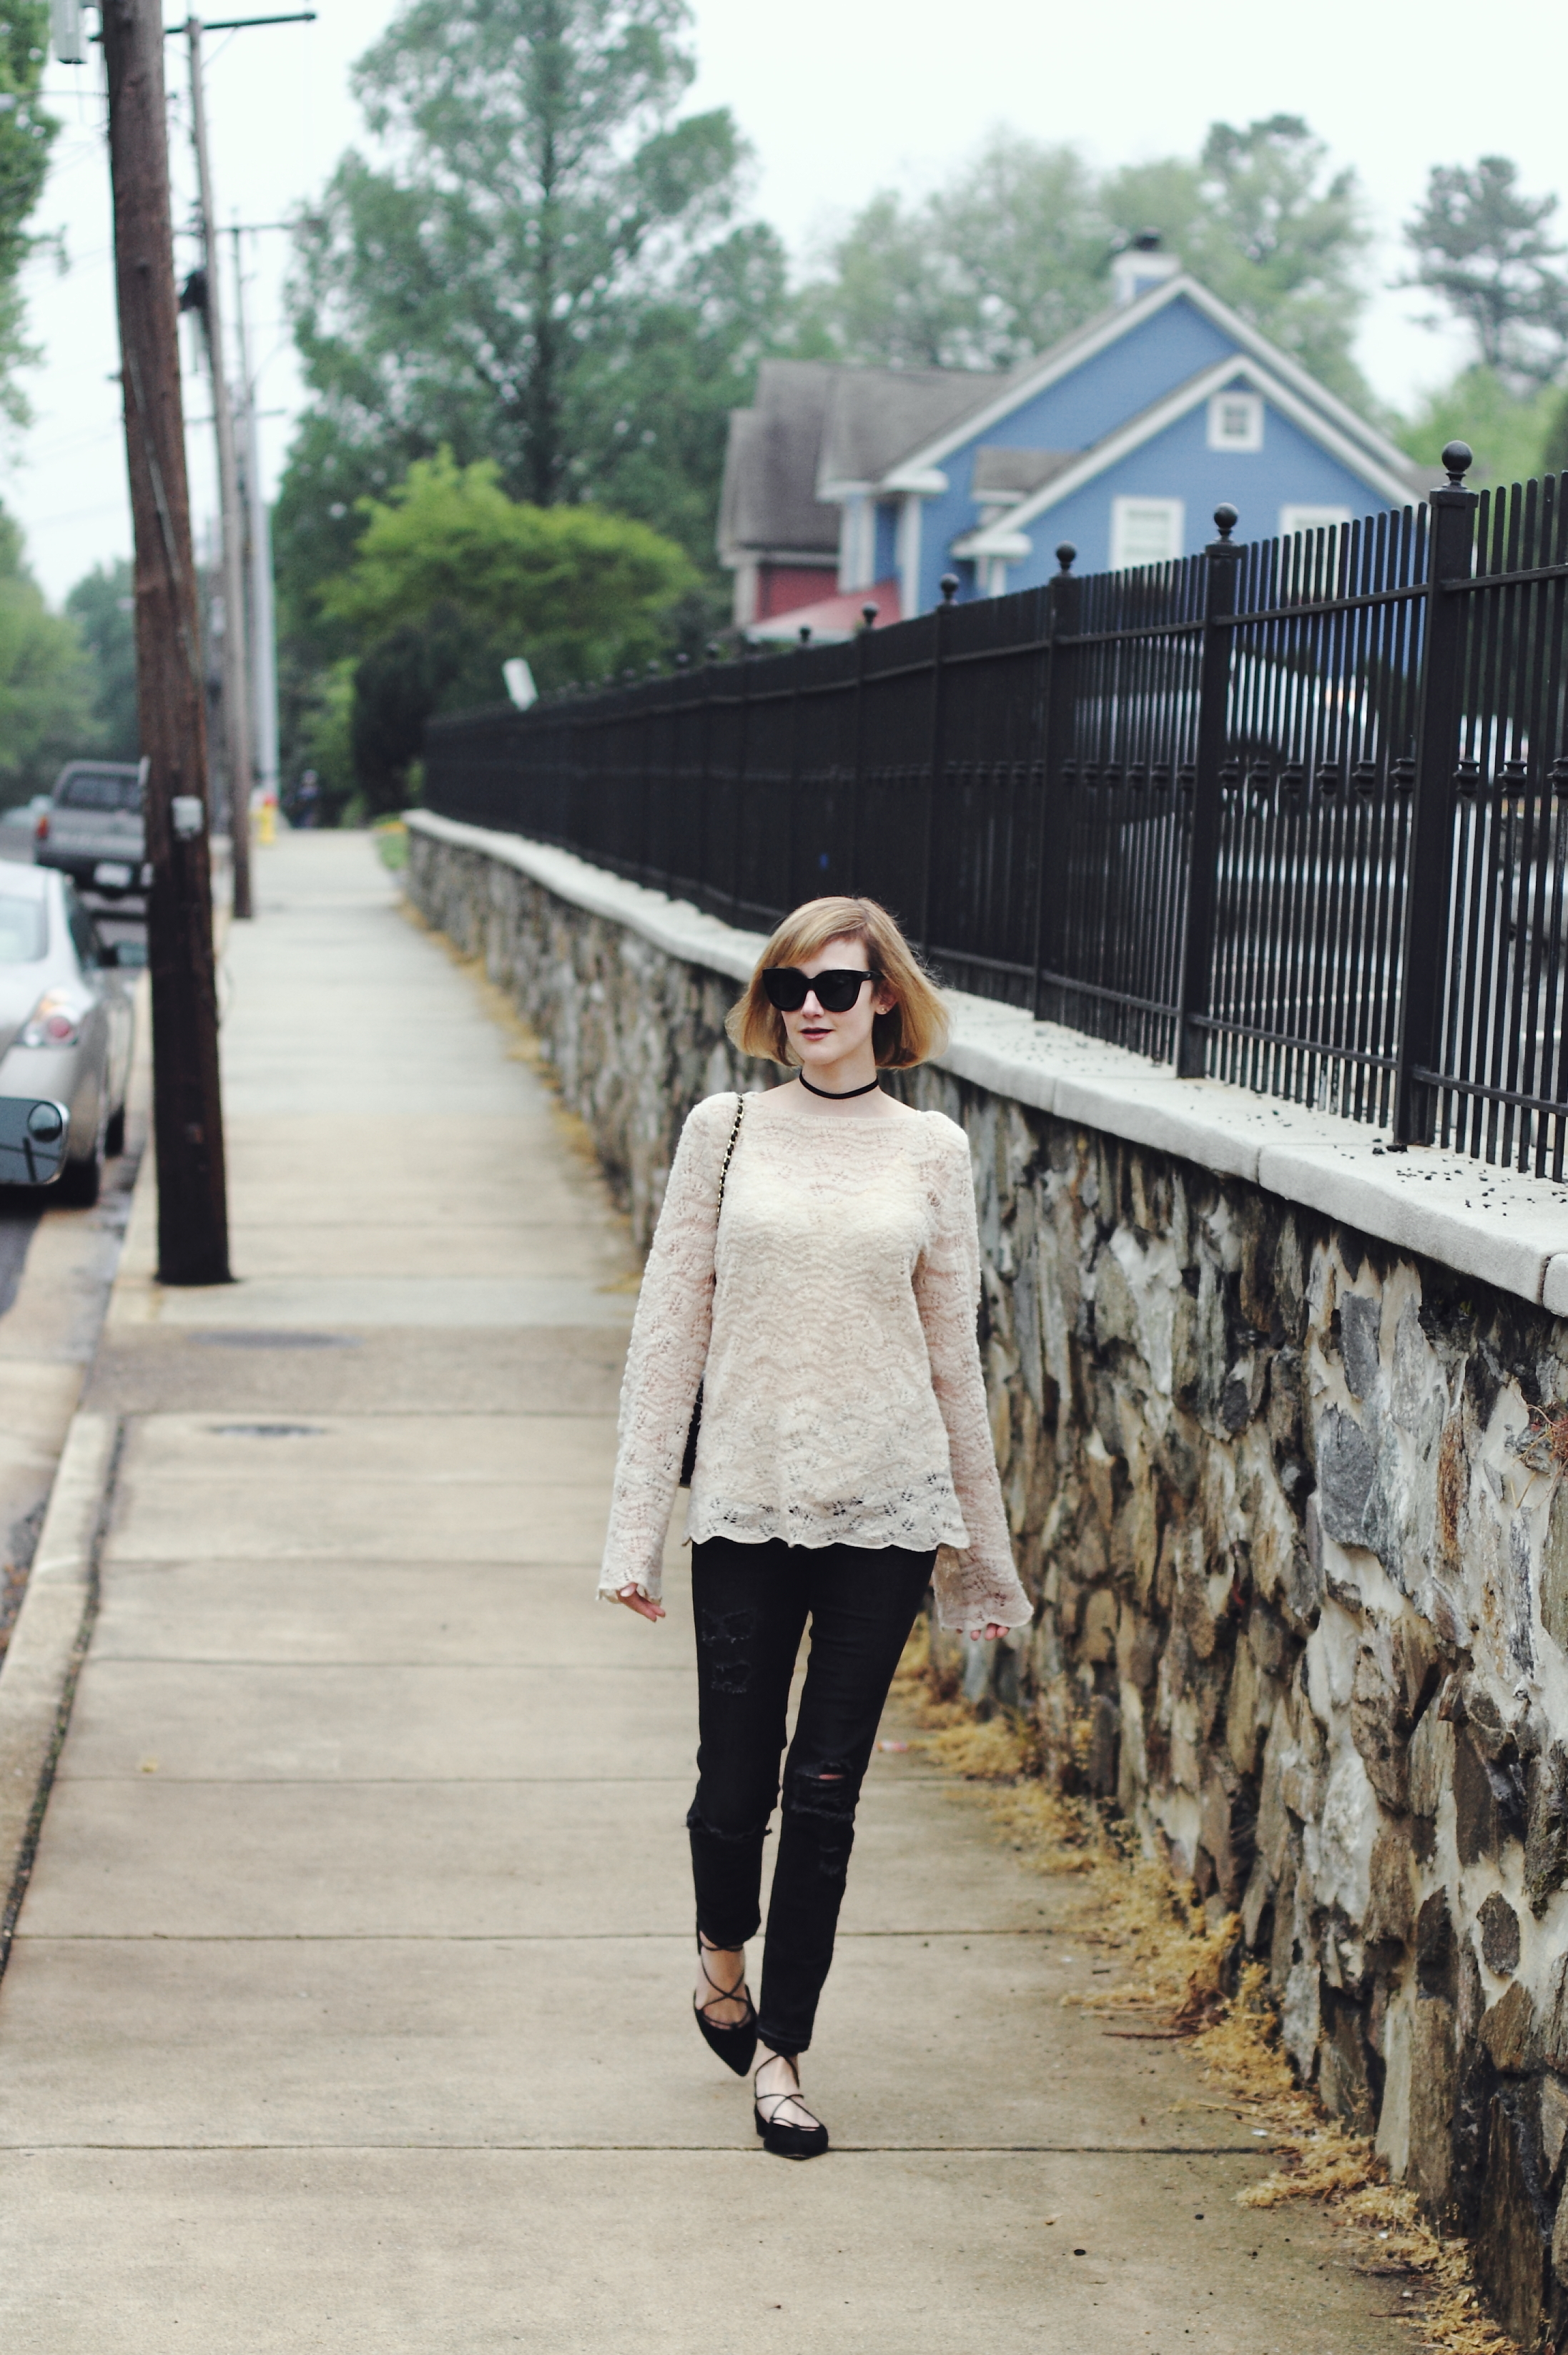 bell-sleeved sweater and distressed denim